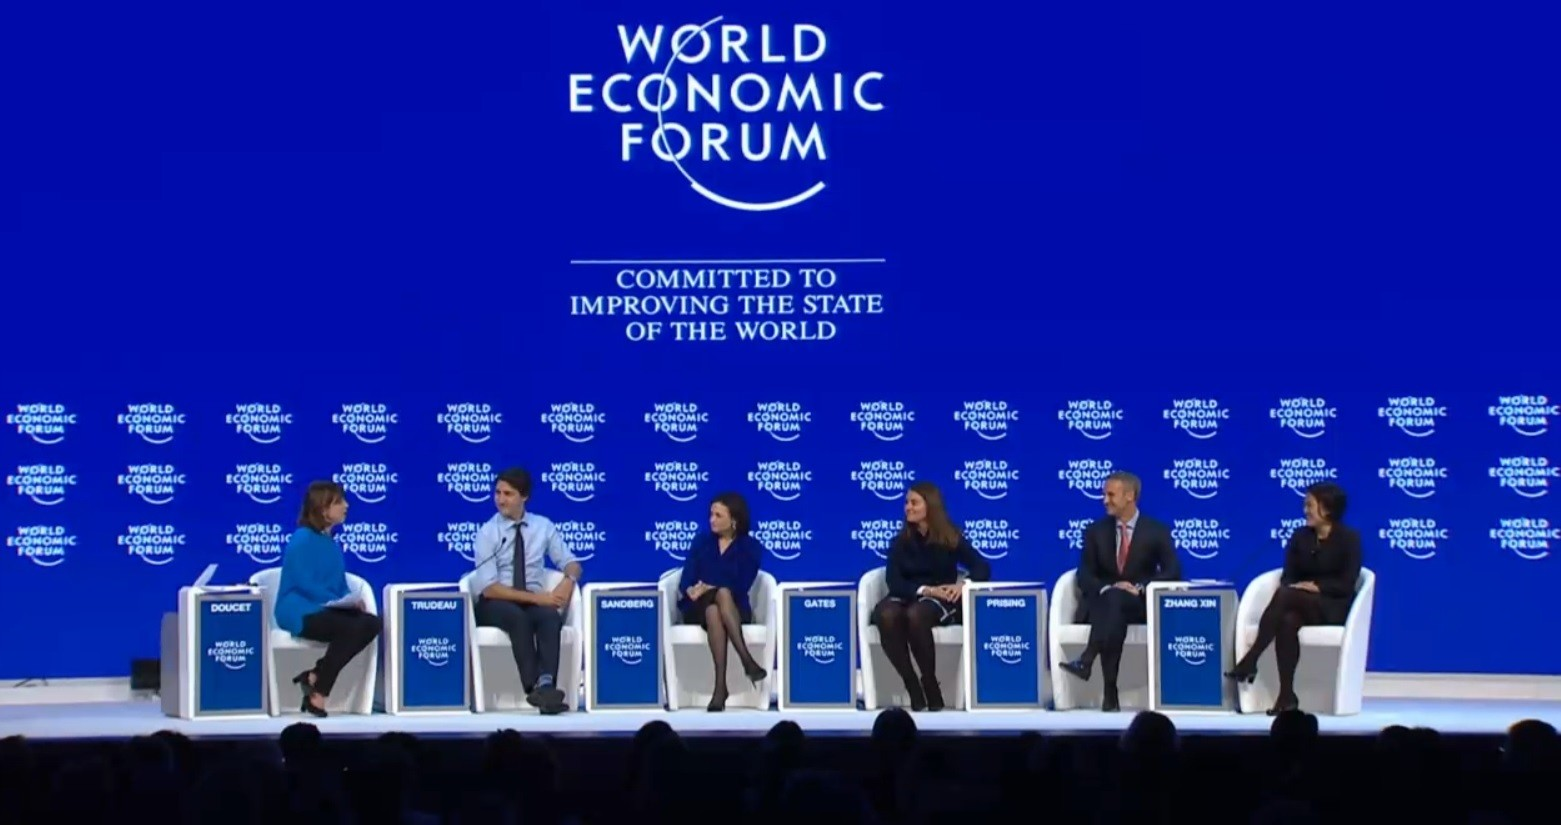 davos the world economic forum essay In 2017, the world economic forum in davos attracted considerable attention when for the first time, a head of state from the people's republic of china was present at the alpine resort.